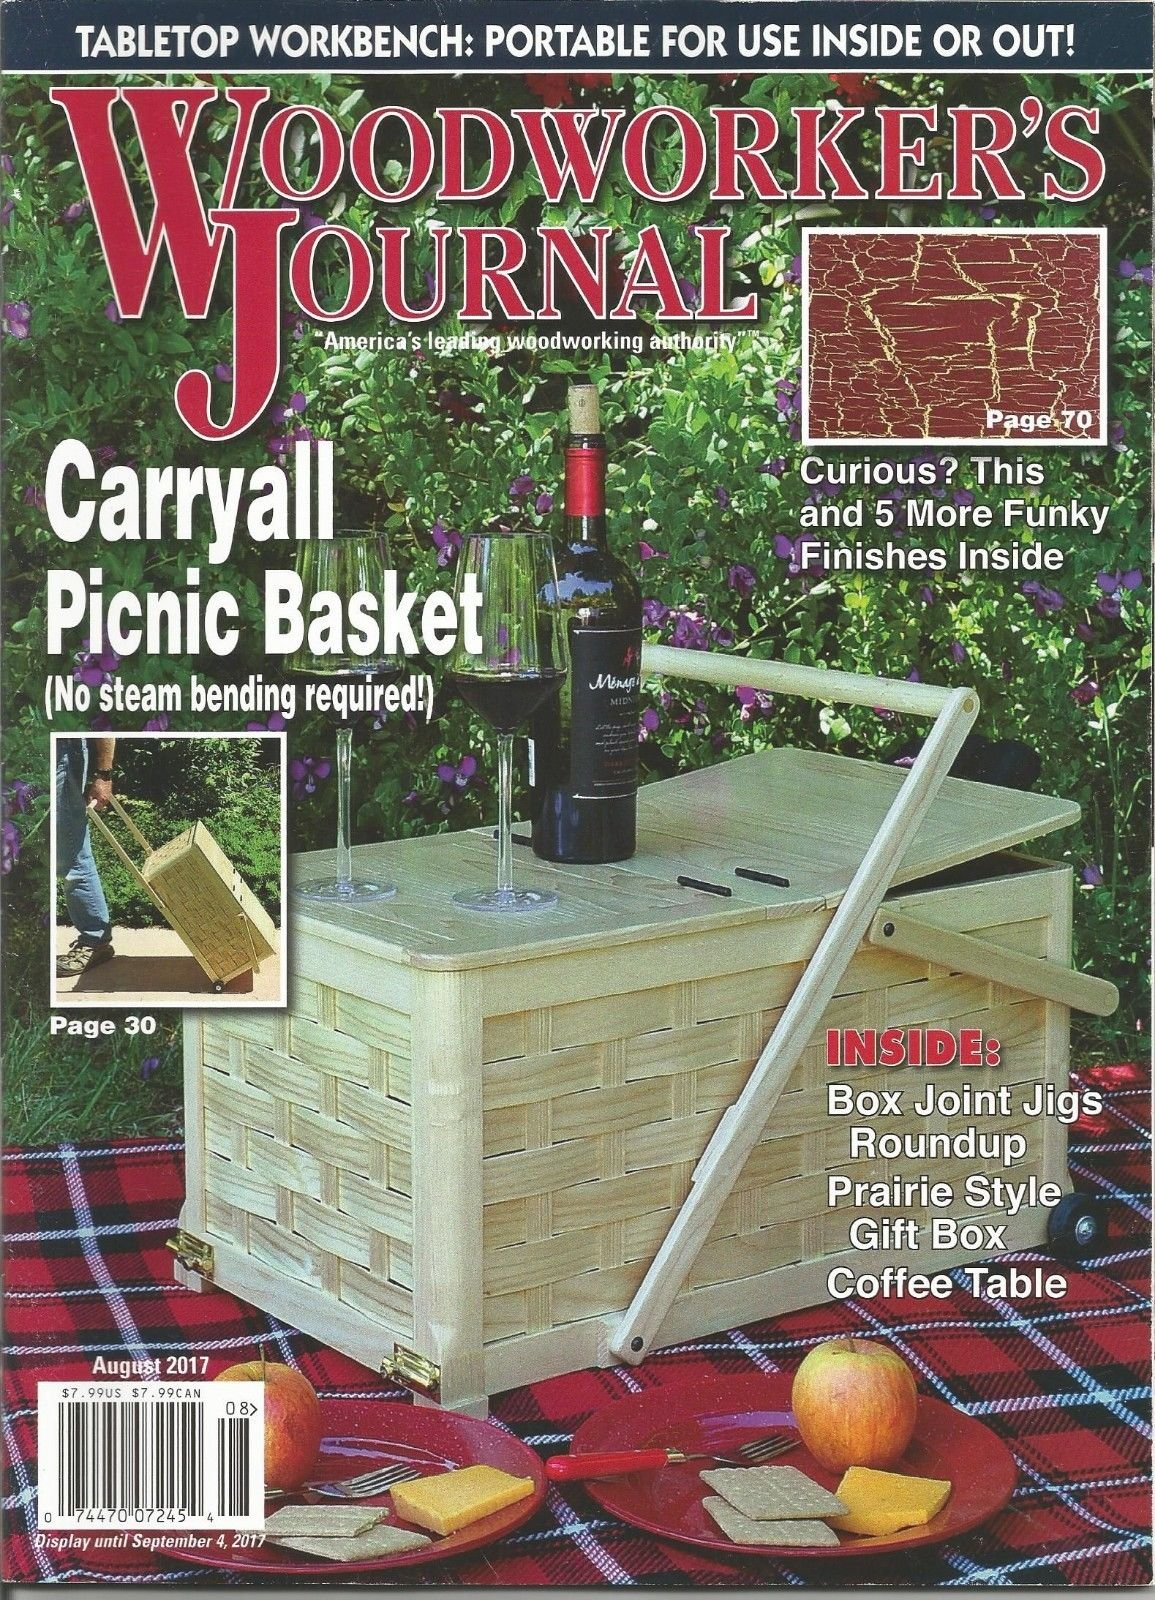 WOOD WORKER'S JOURNAL, AMERICA'S LEADING WOODWORKING AUTHORITY, AUGUST 2017